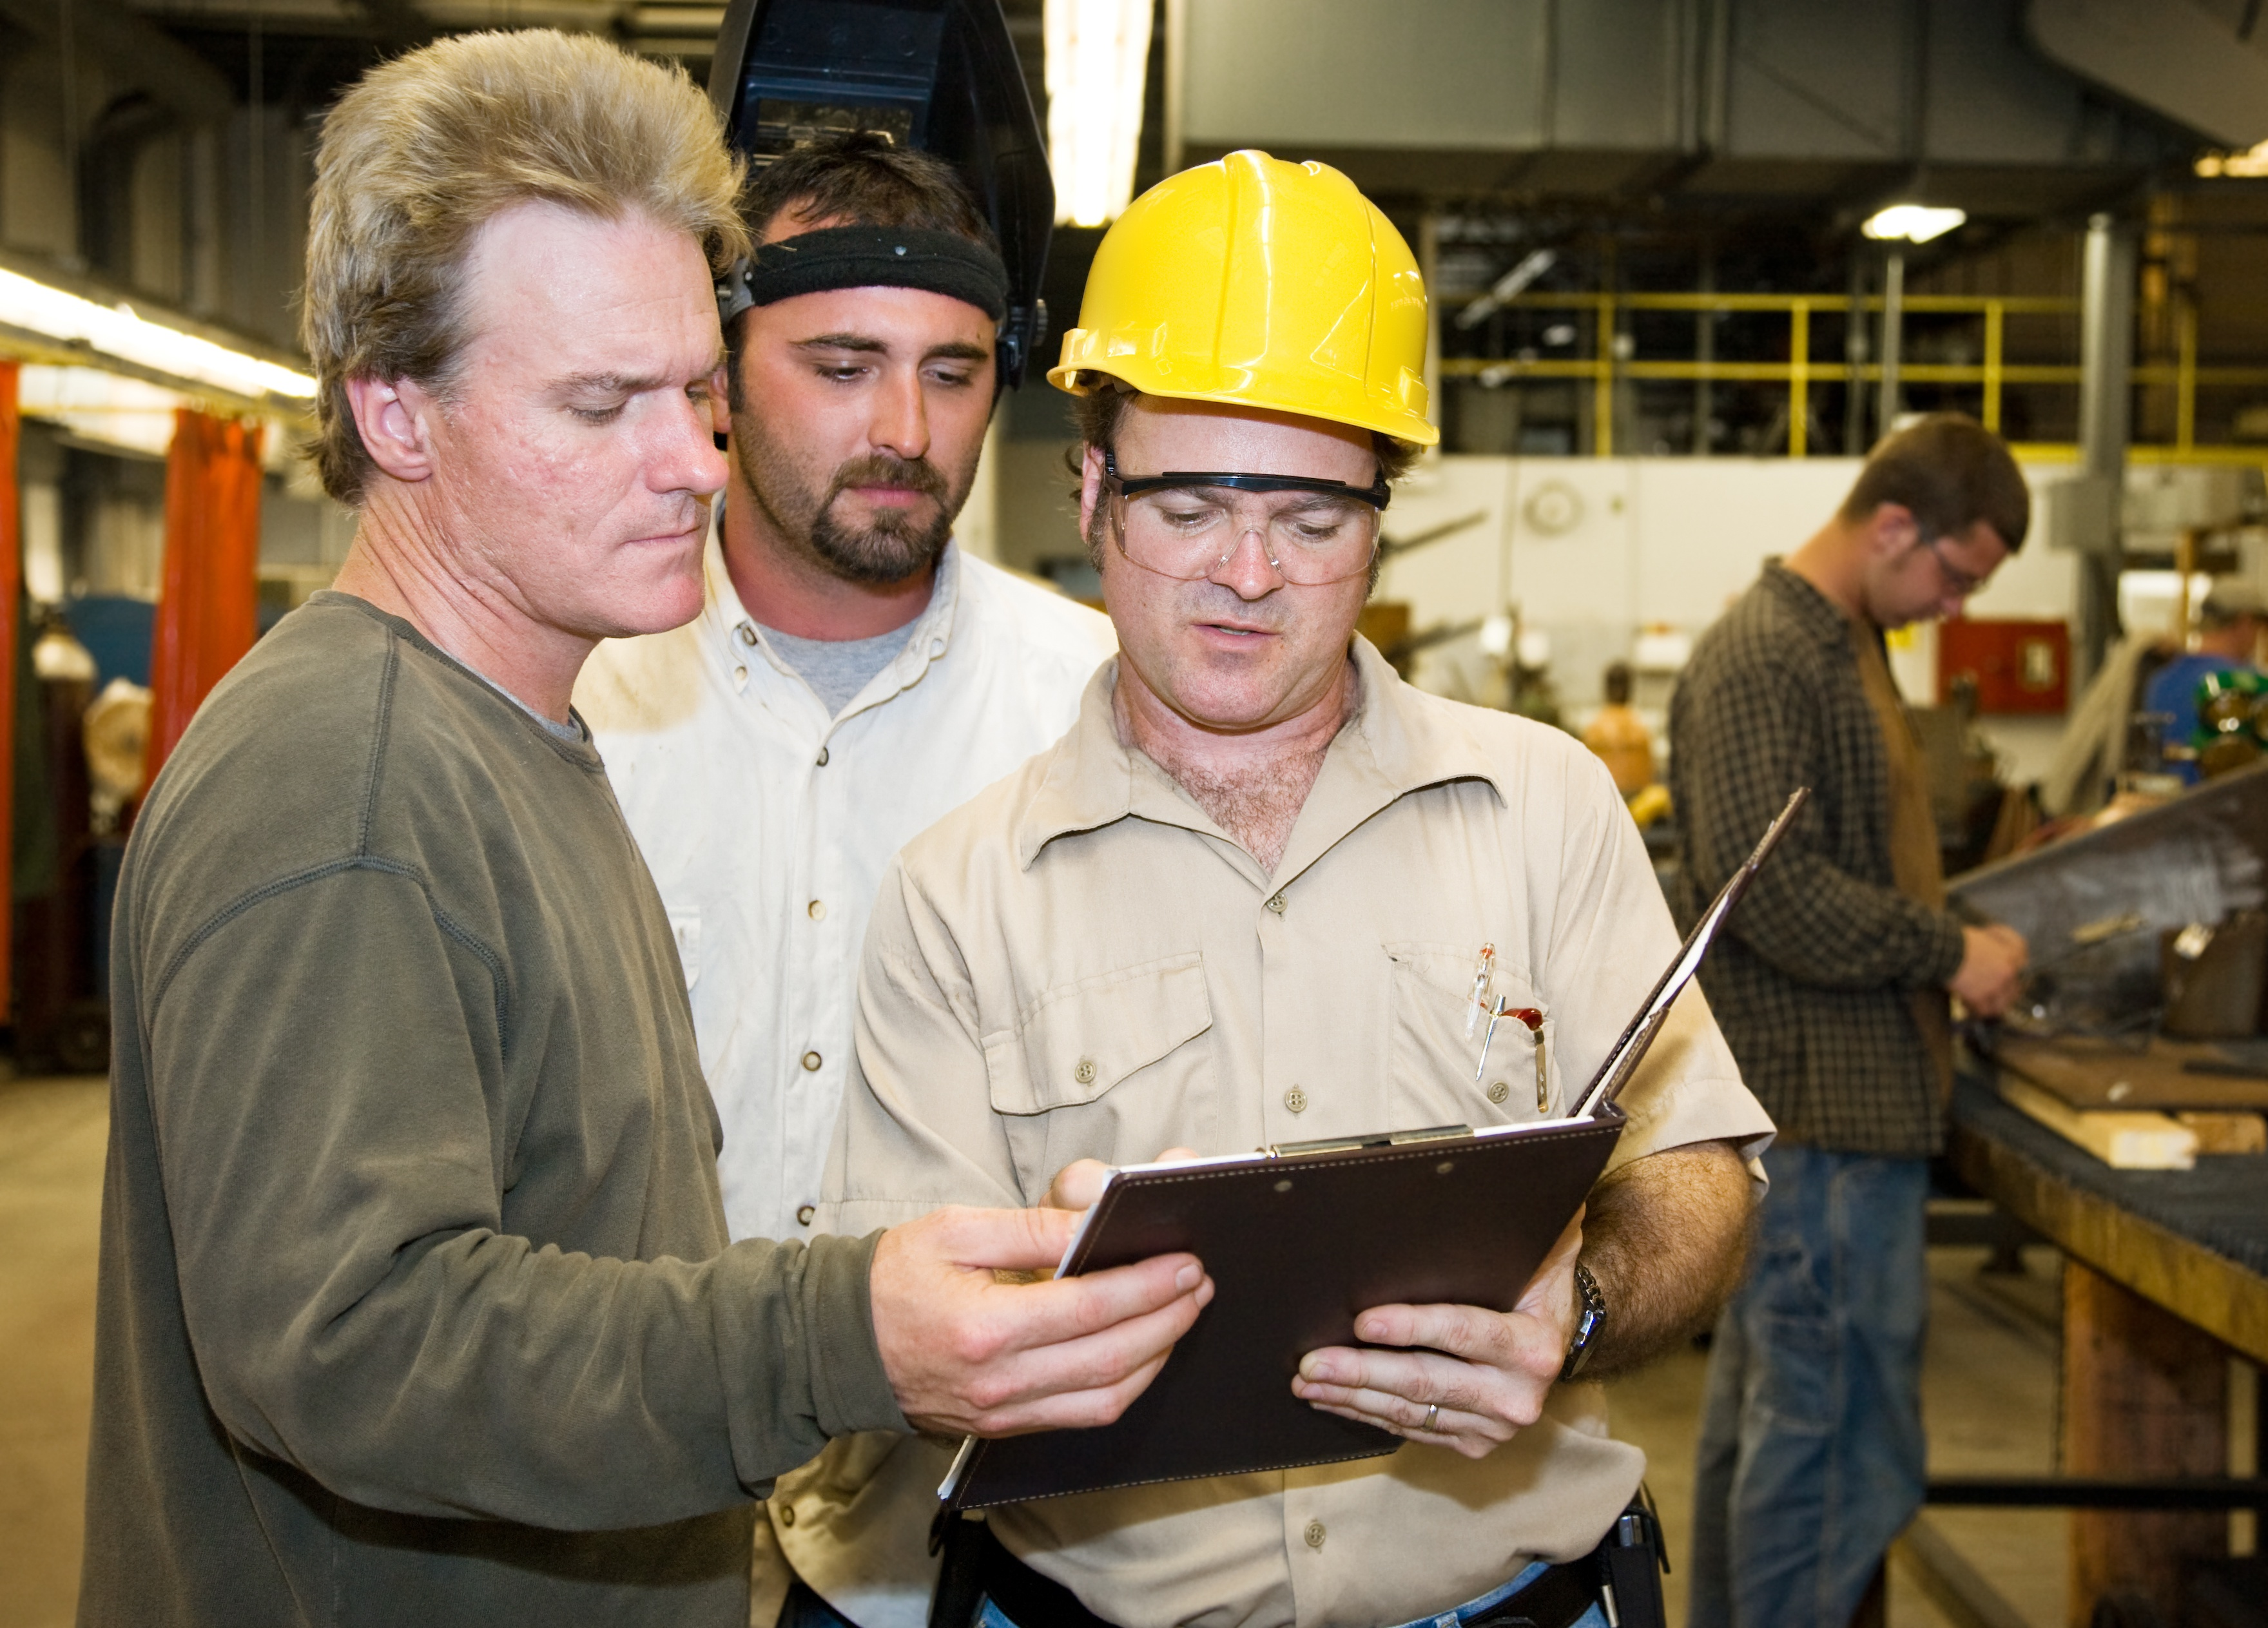 Factory worker and foreman discuss inspection report with OSHA auditor.